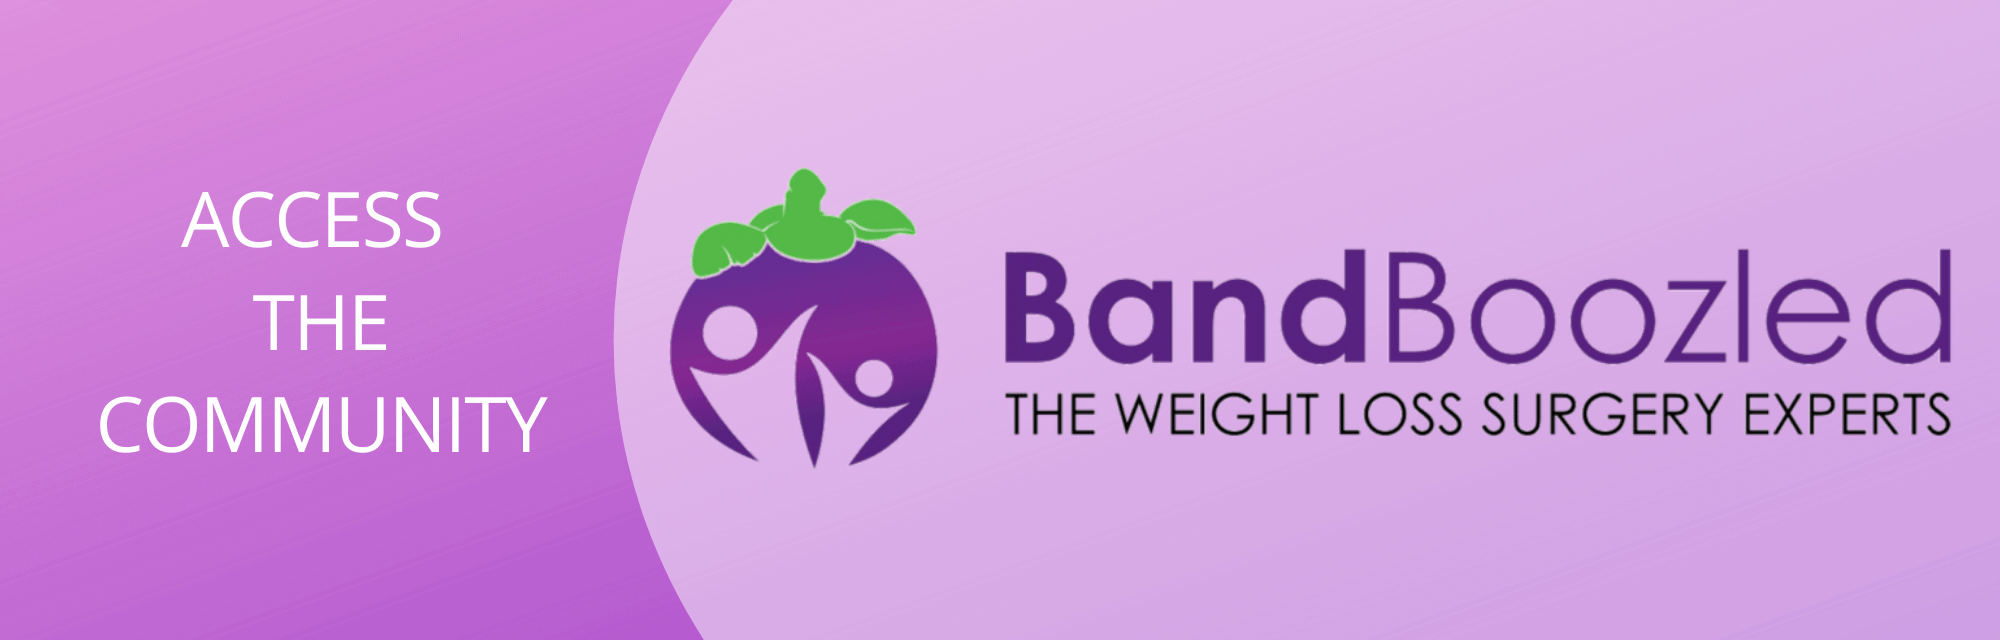 Bandboozled Weight Loss Surgery Support Community